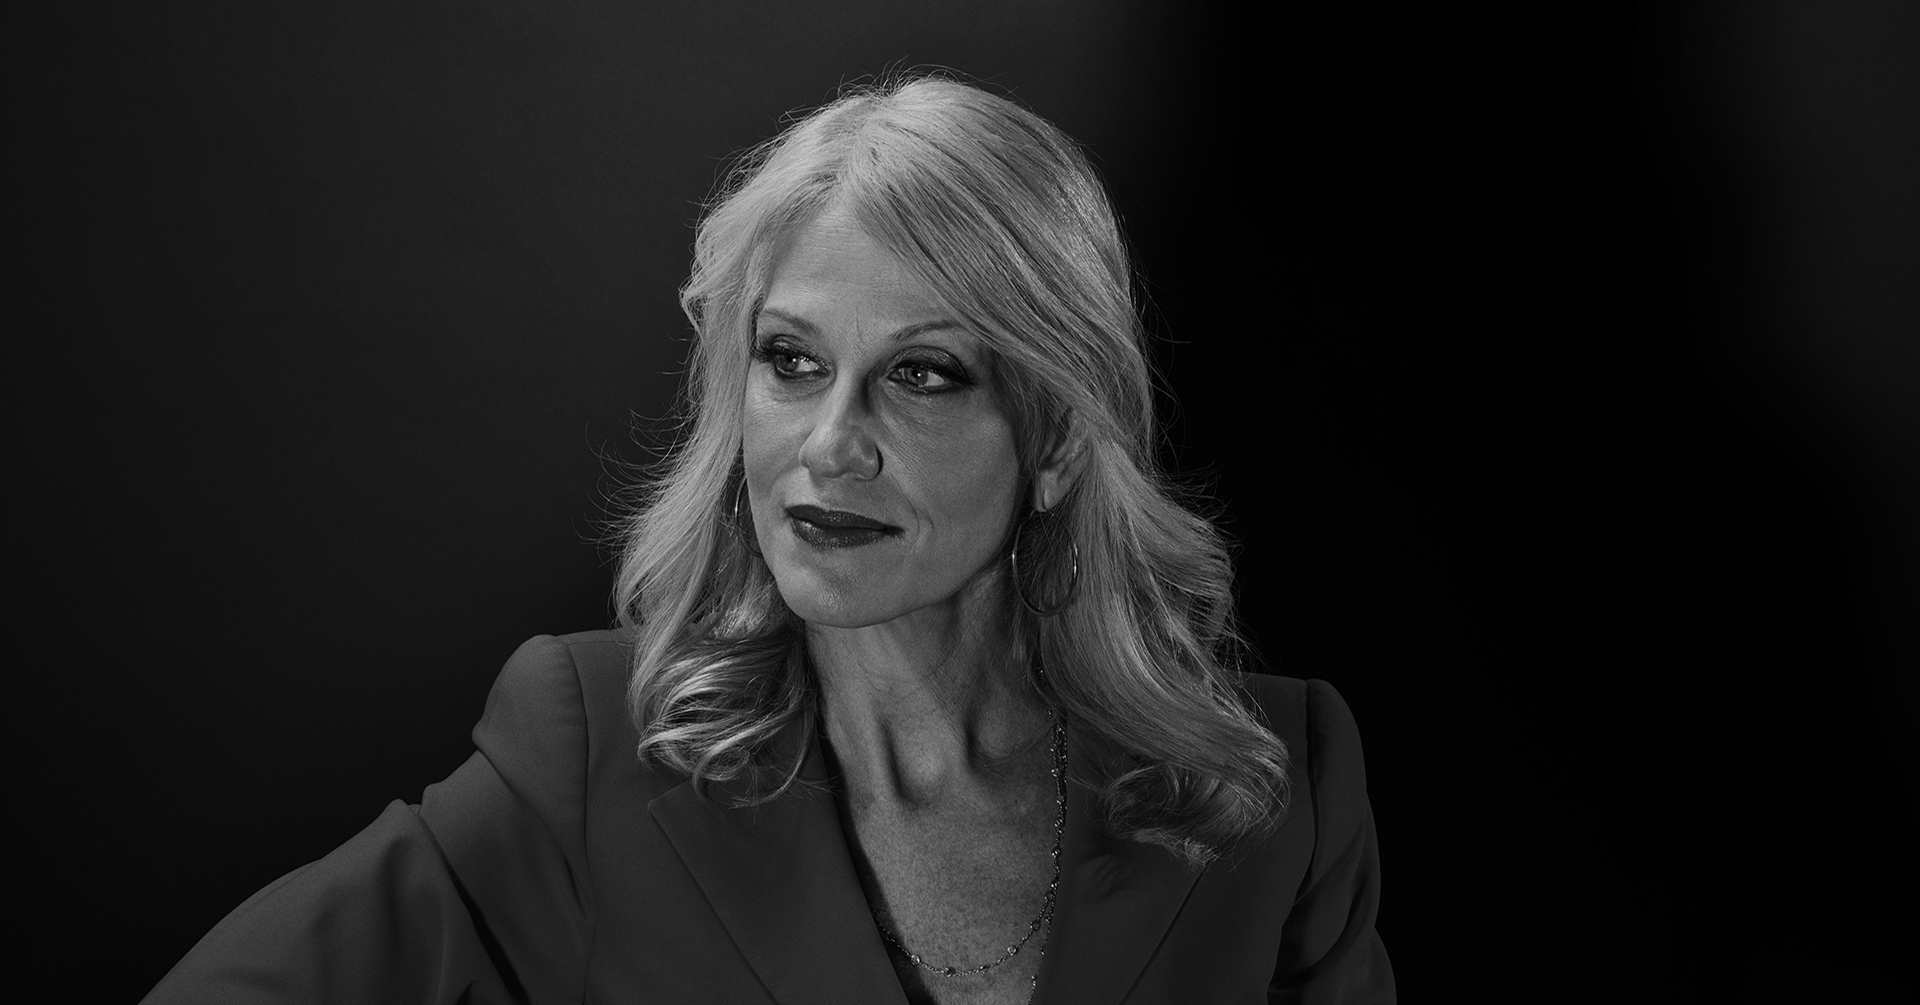 The Trump Whisperer                       A former resident of one of Trump's buildings, pollster Kellyanne Conway became his campaign manager in August. She is known for her blunt advice, sometimes through TV appearances.